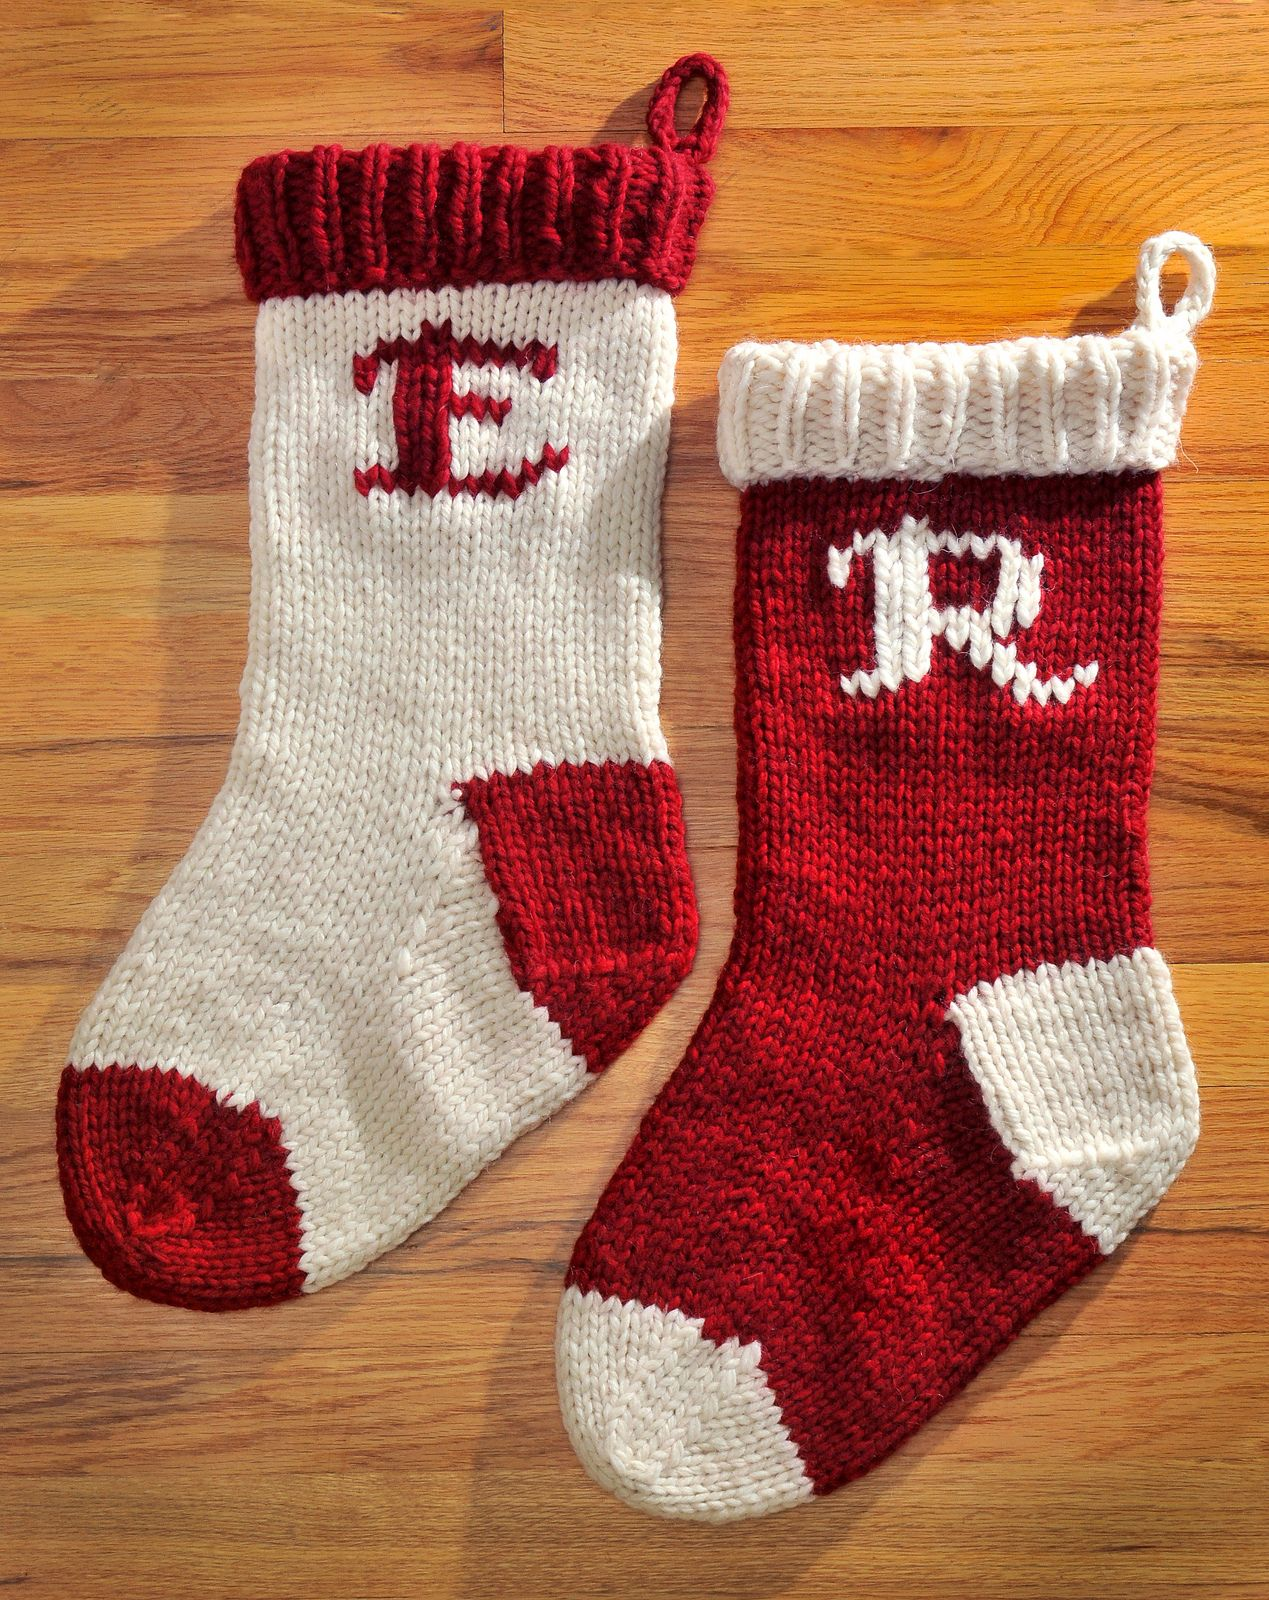 Ravelry: Jumbo Christmas Stocking in a Jiffy - … | Knitted ...